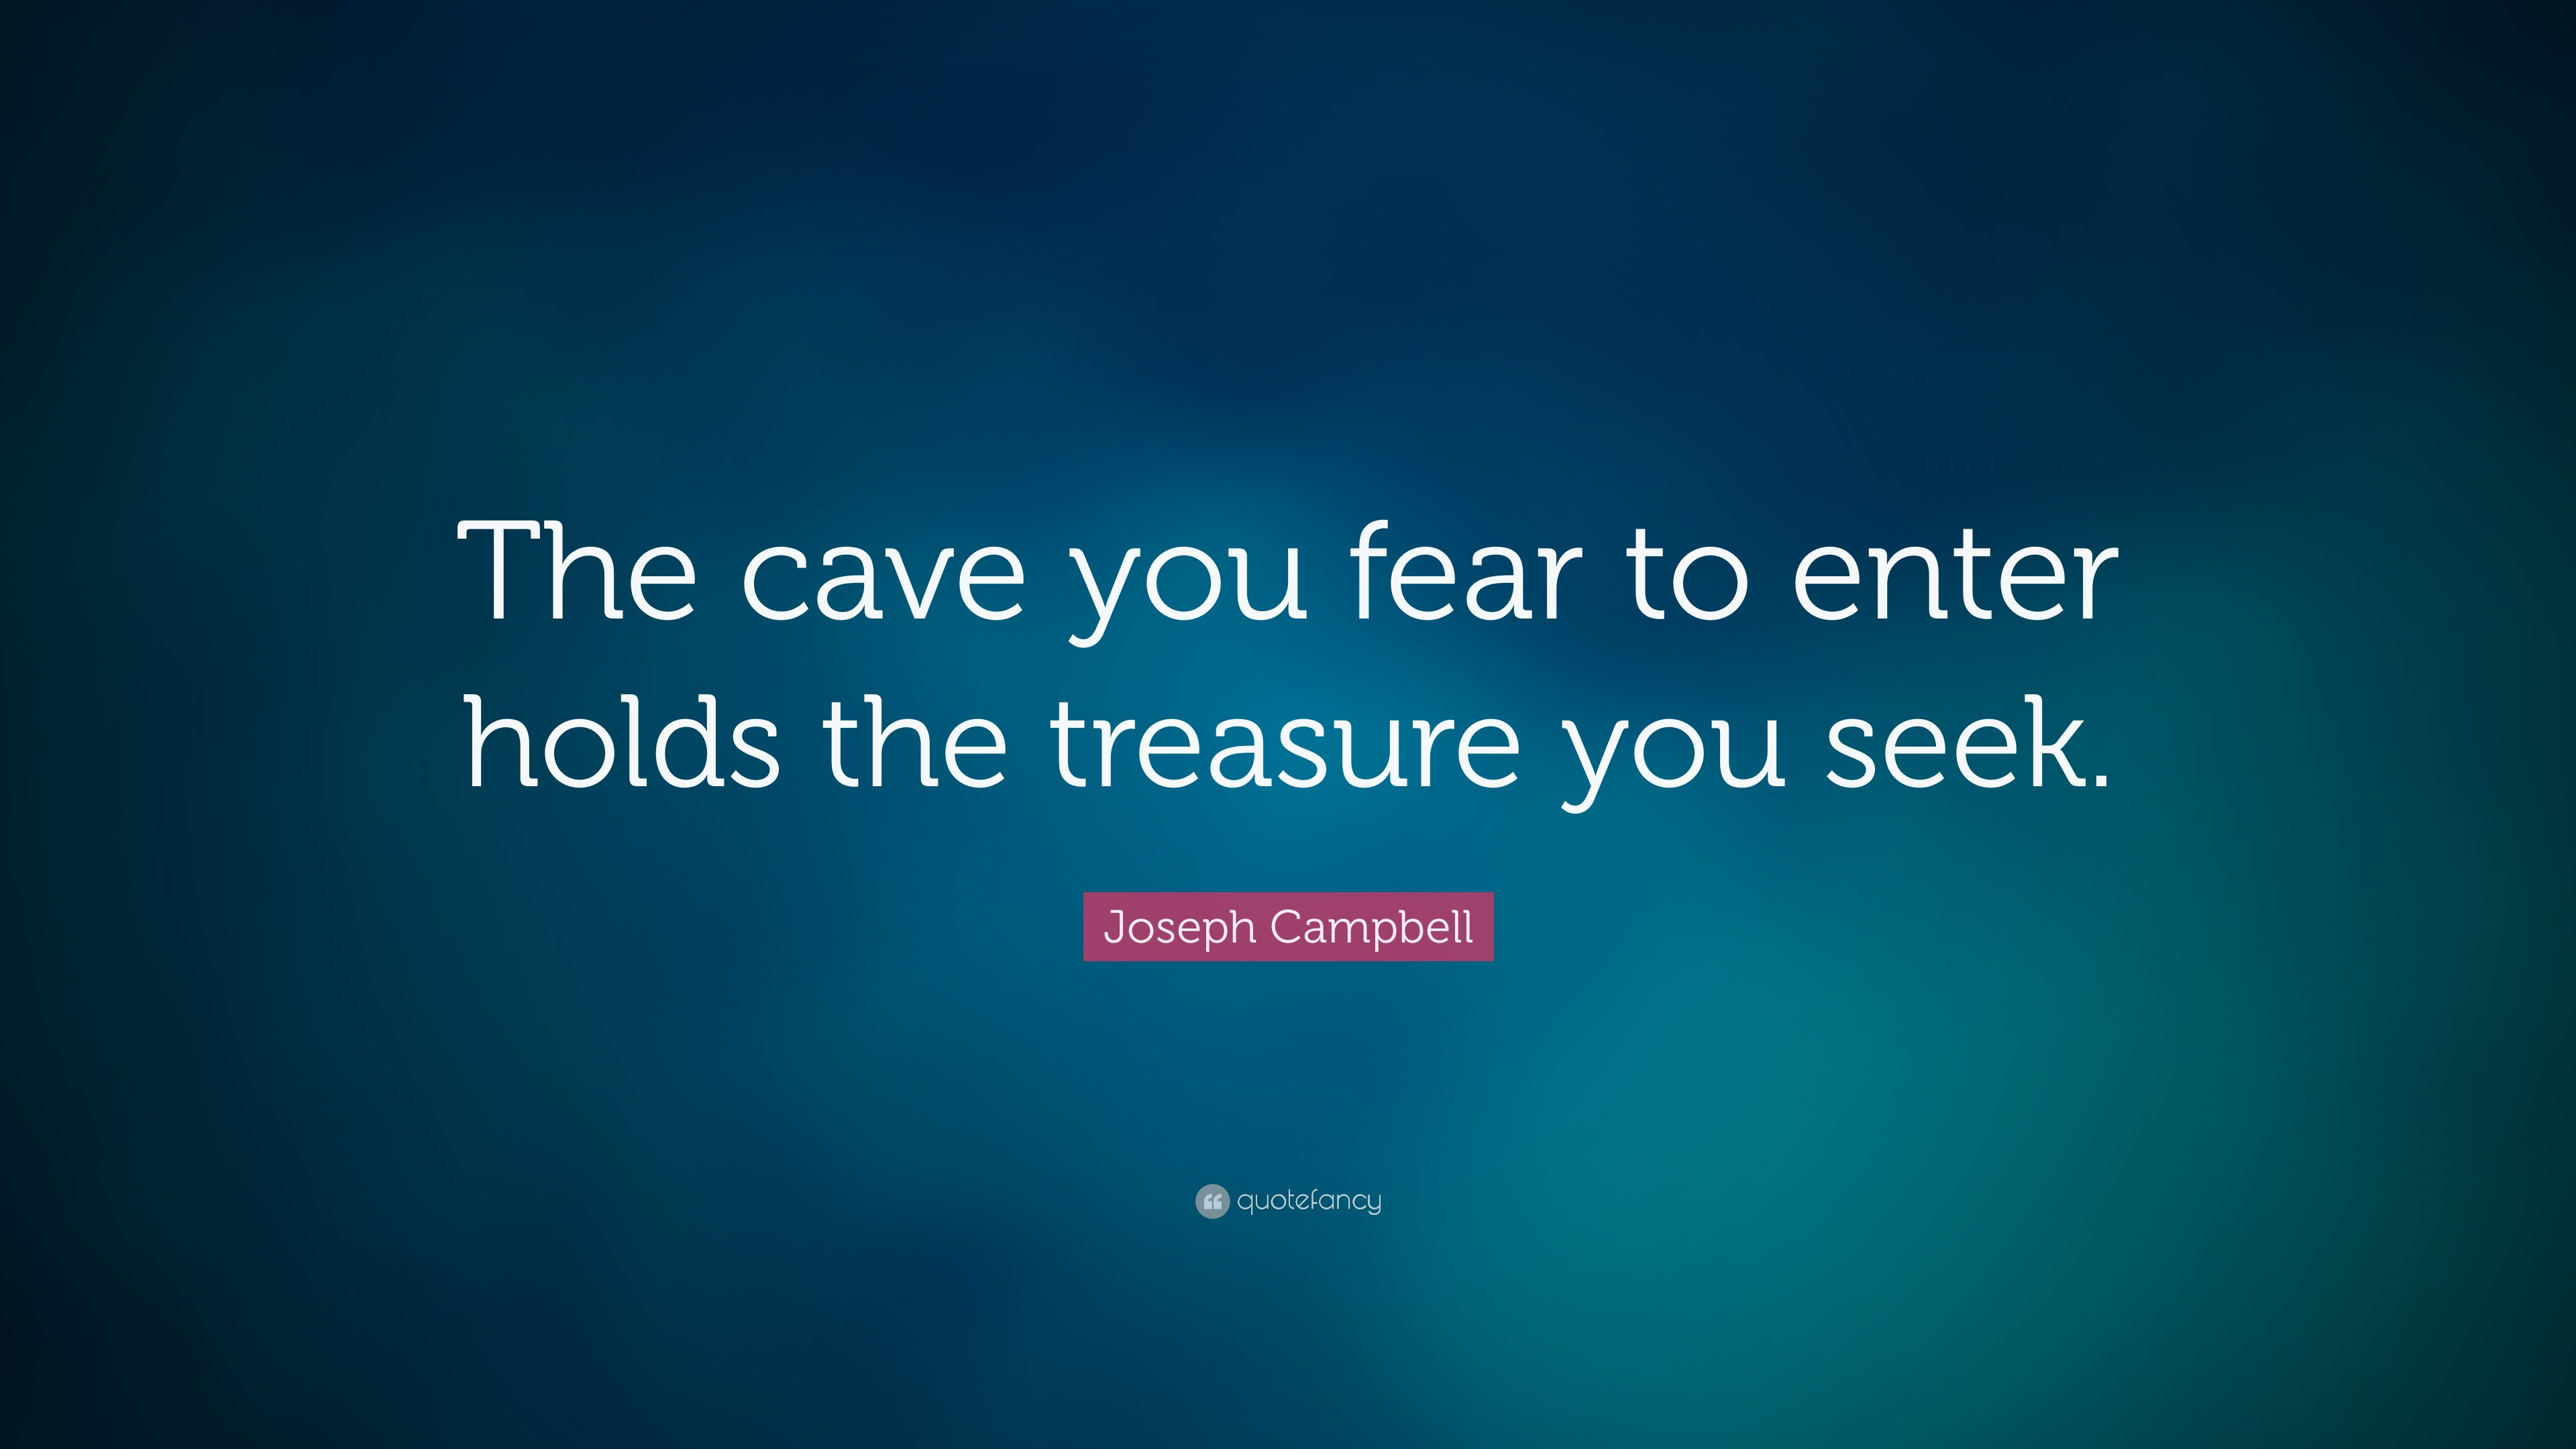 Marcus Aurelius Quotes Wallpaper Joseph Campbell Quote The Cave You Fear To Enter Holds